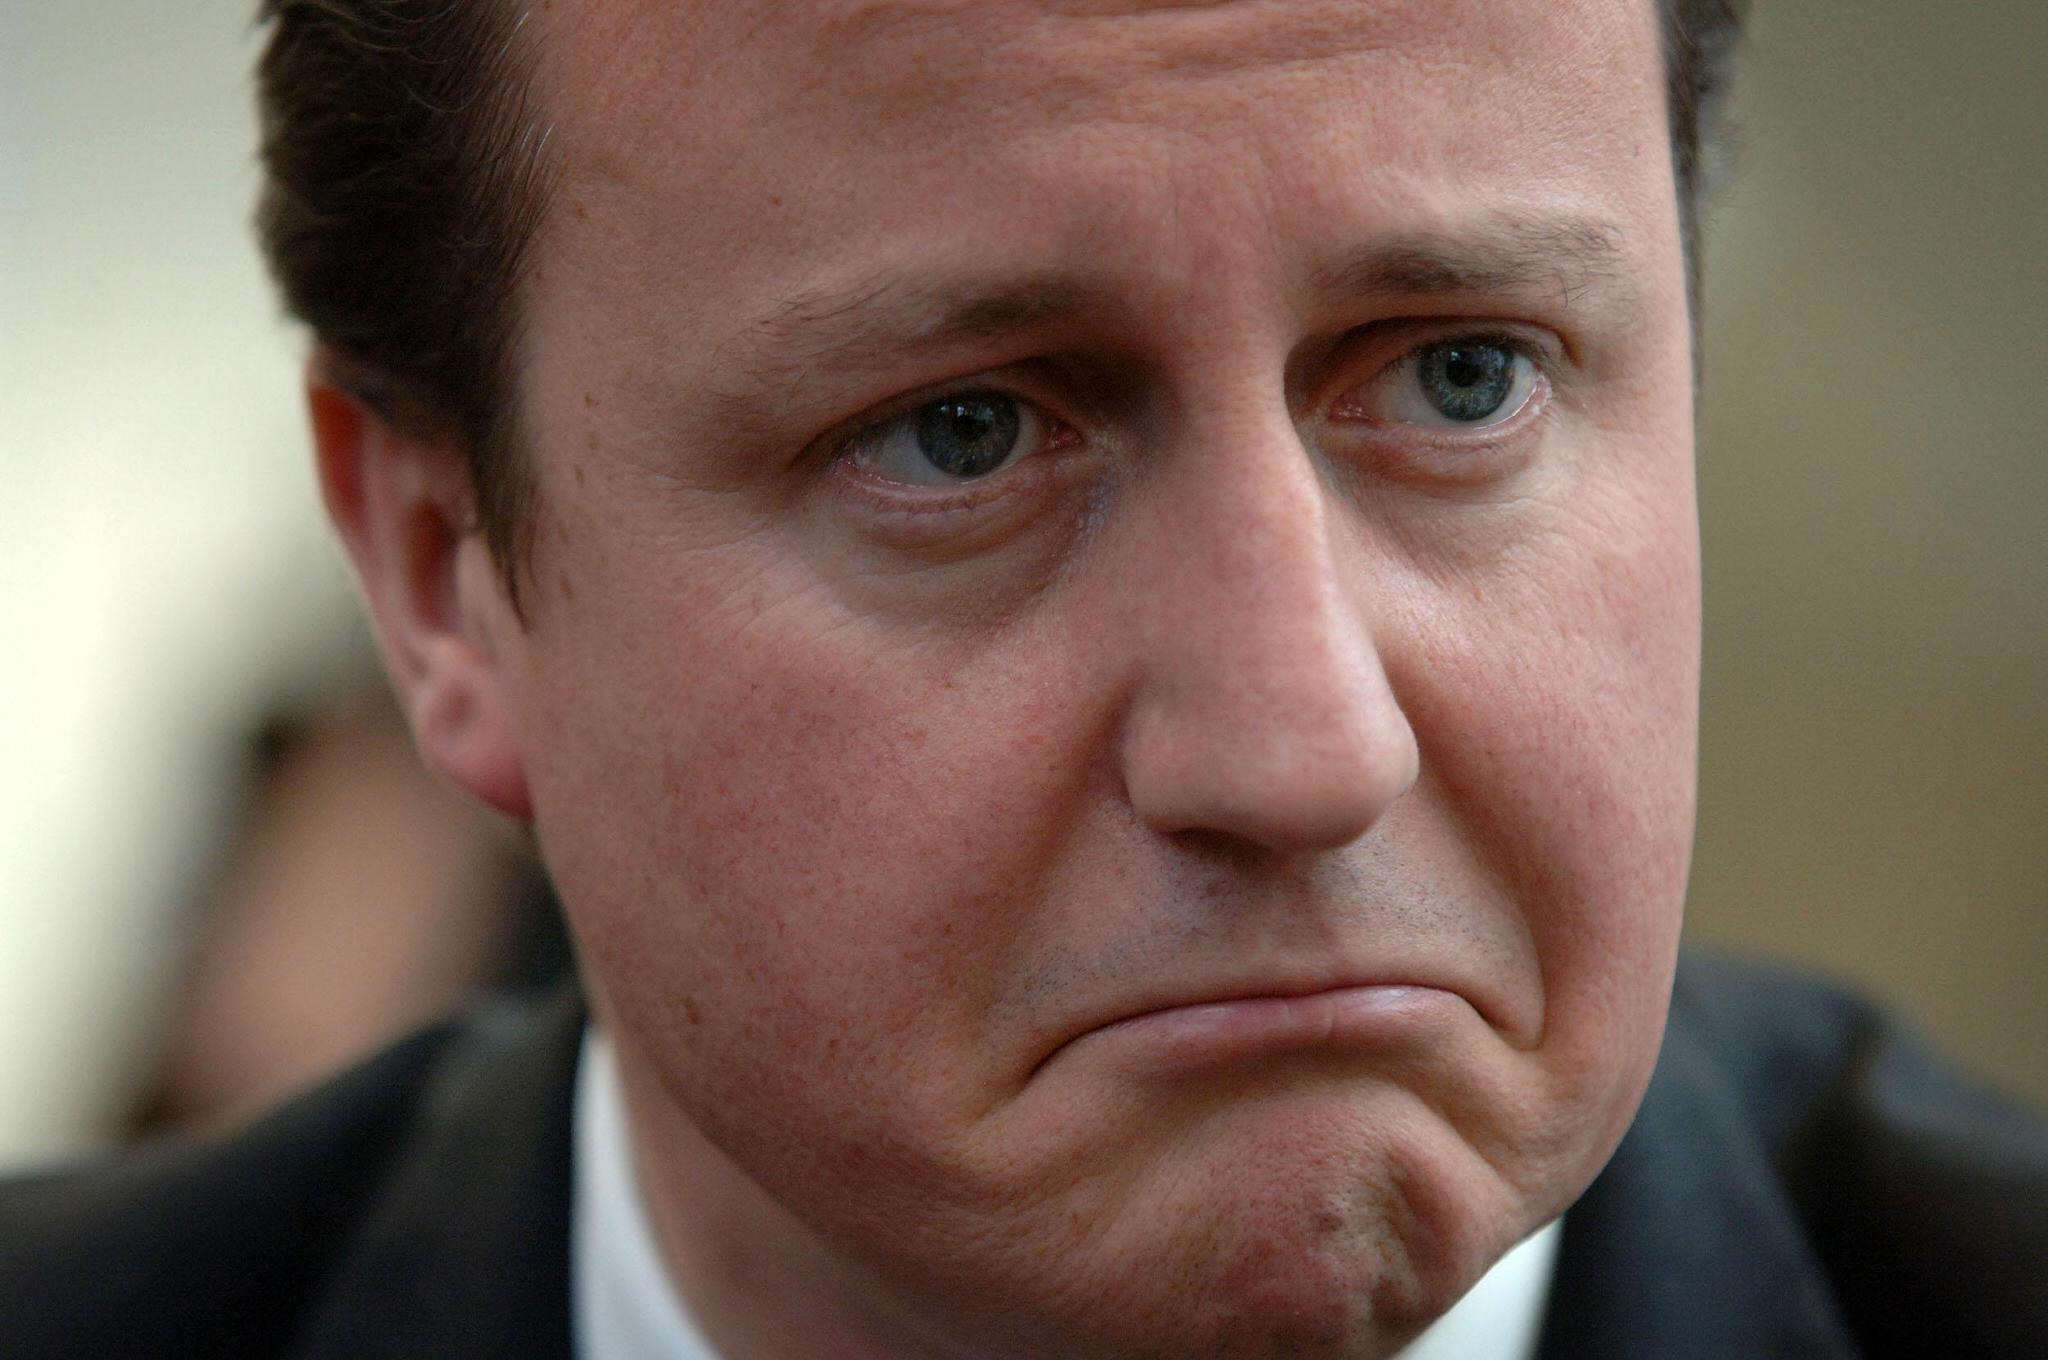 PA 4276282 David Cameron Has Axed His Own Mums Job With Latest Tory Cuts